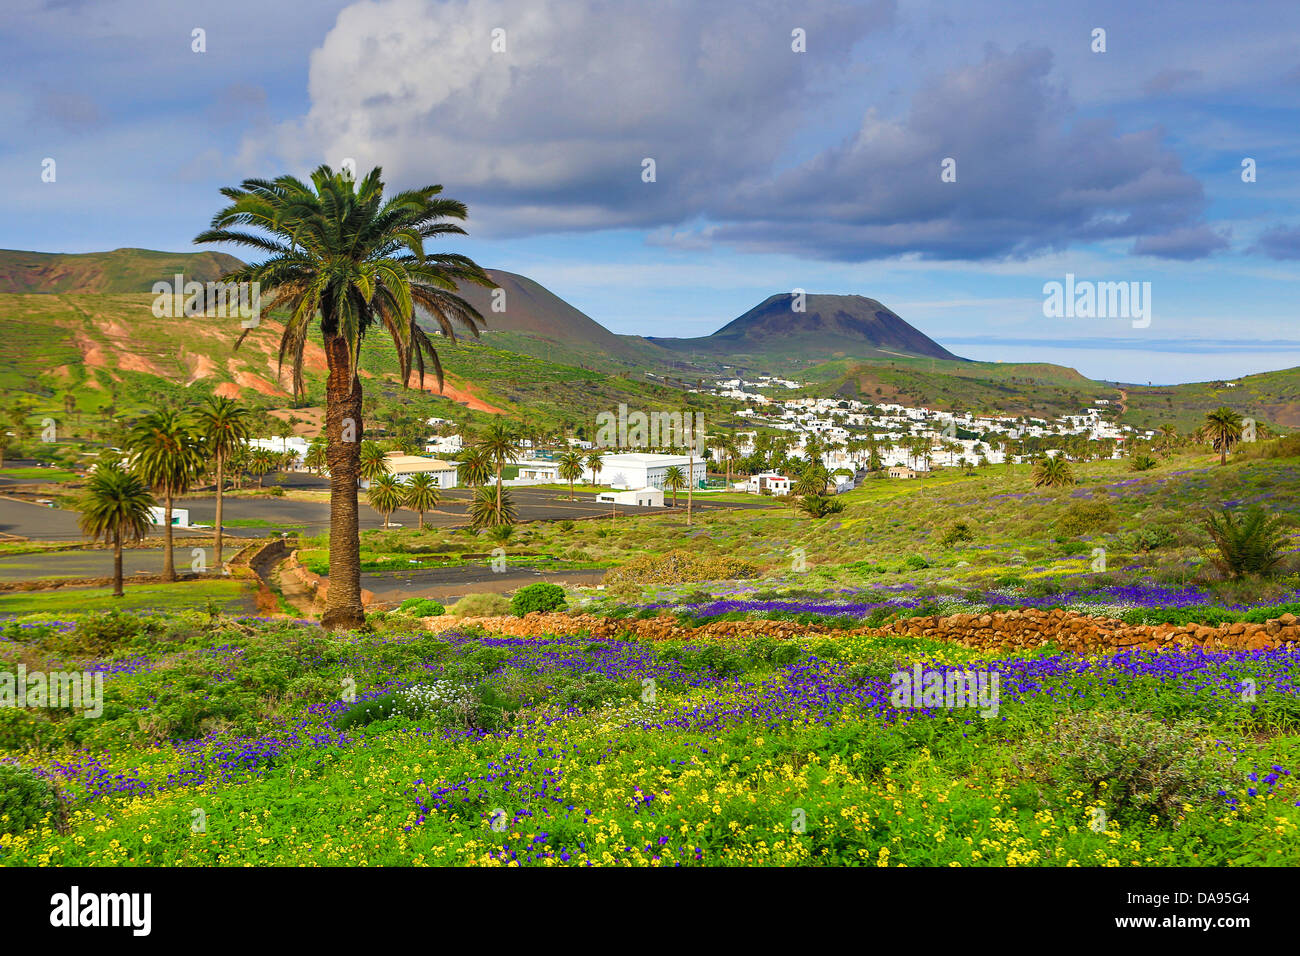 Spain, Europe, Canary Islands, Haria, Lanzarote, Mague, Village, agriculture, colourful, flowers, island, landscape, - Stock Image